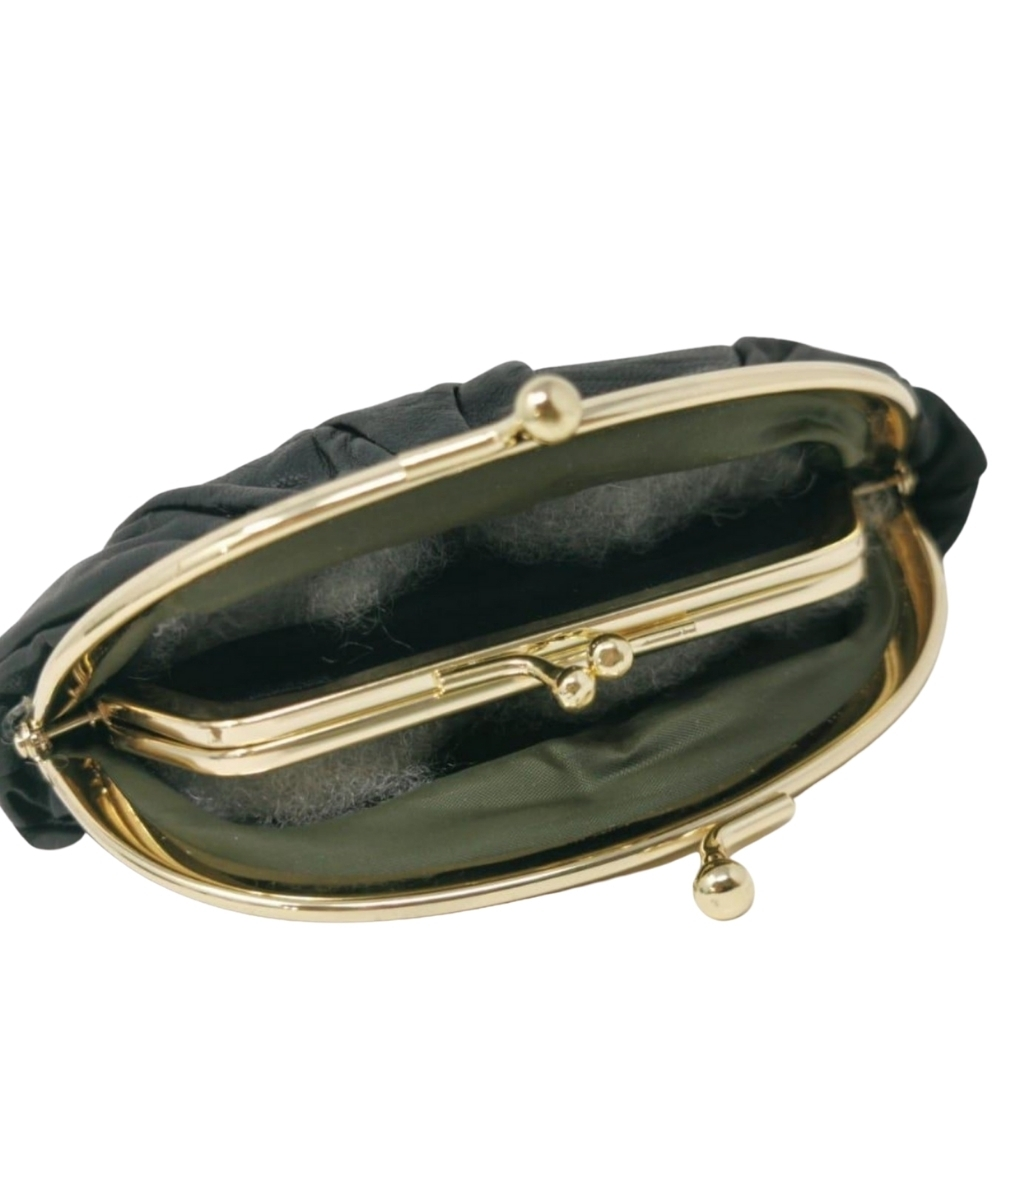 WONDERFUL PURSE - BLACK